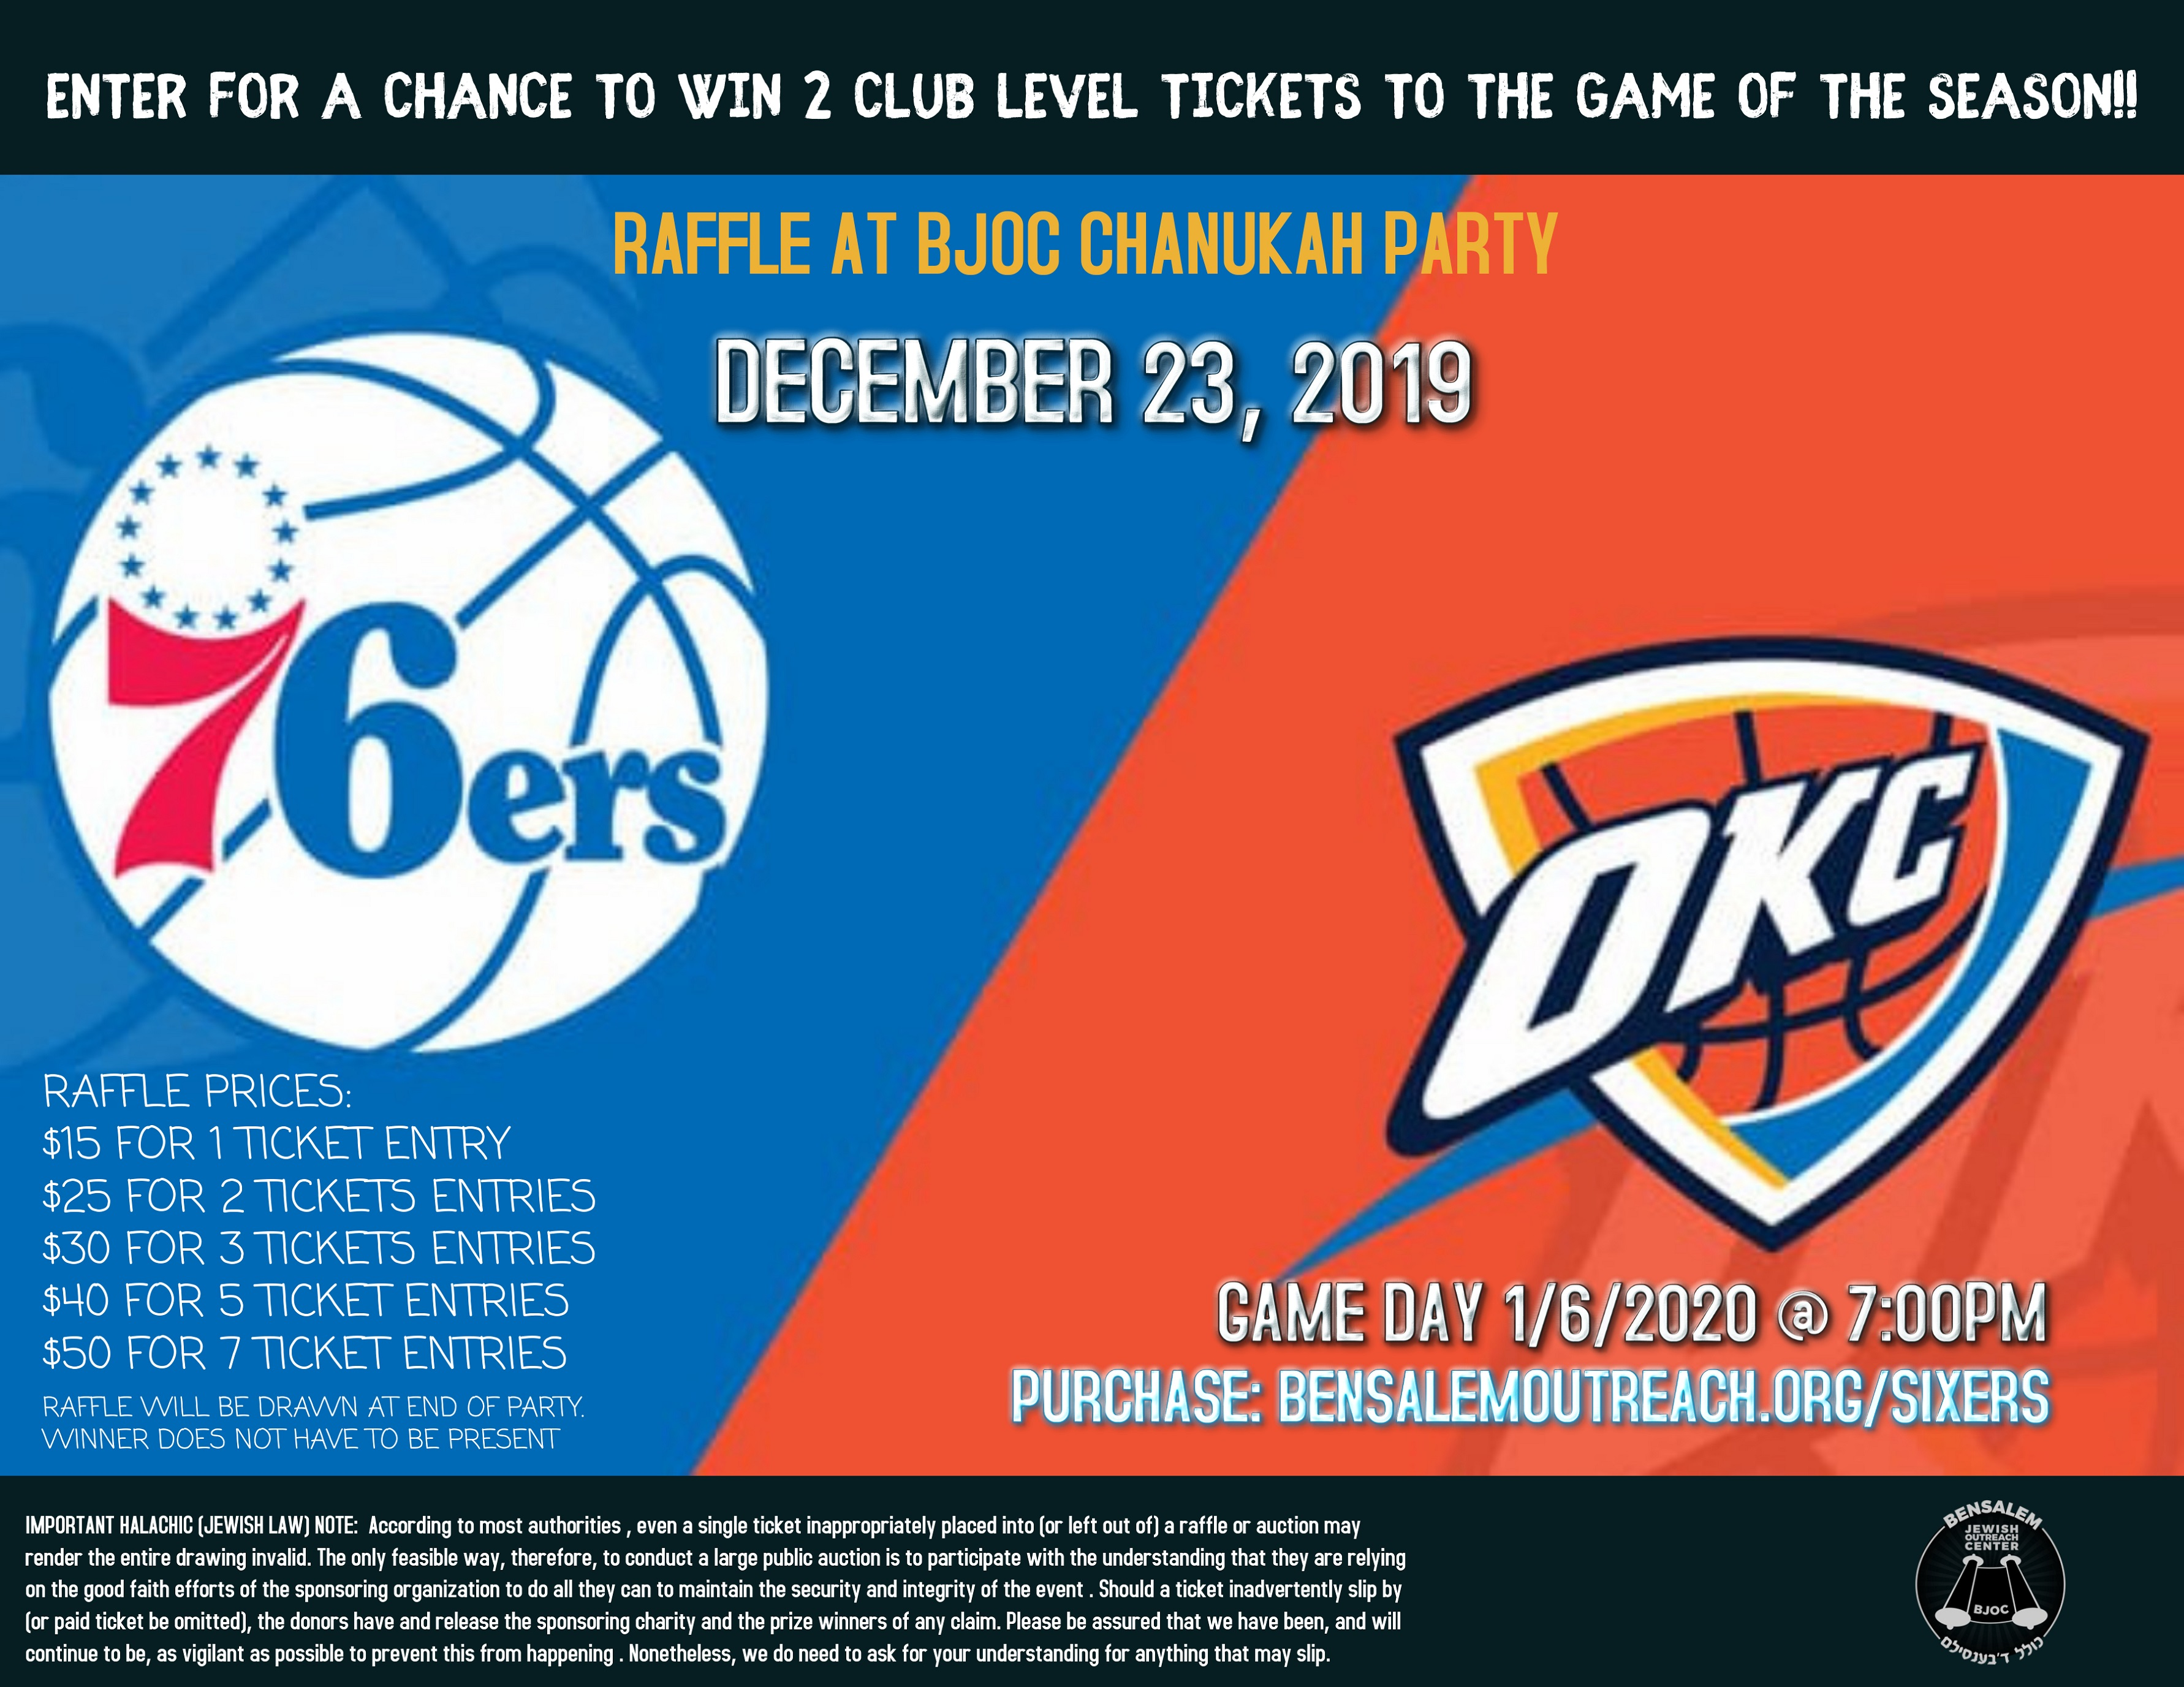 BJOC CHANUKAH SIXERS TICKETS SWEEPSTAKES